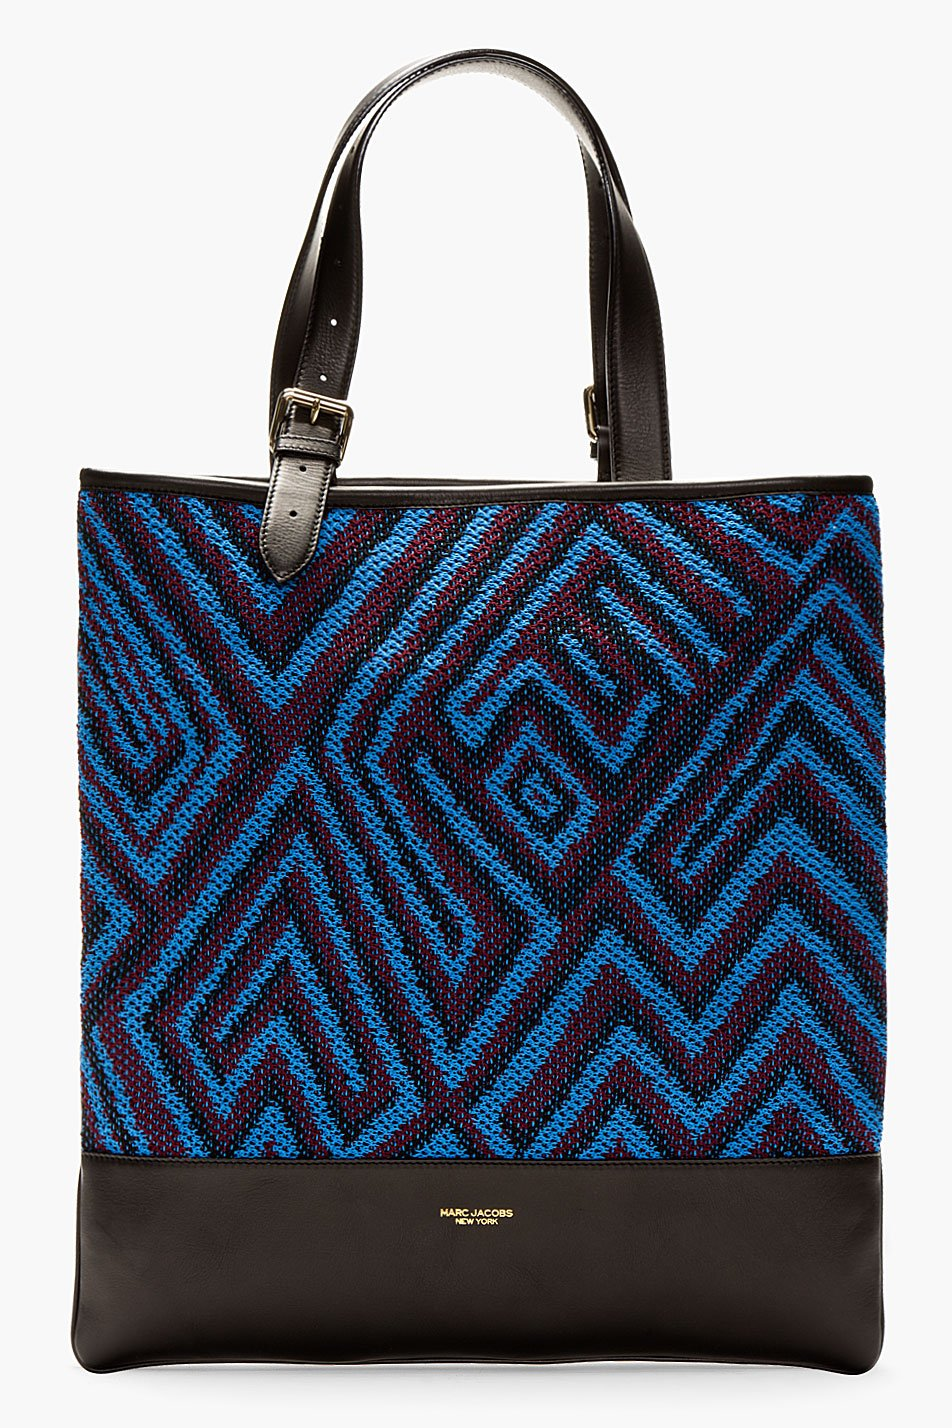 marc jacobs blue and oxblood crocheted tote